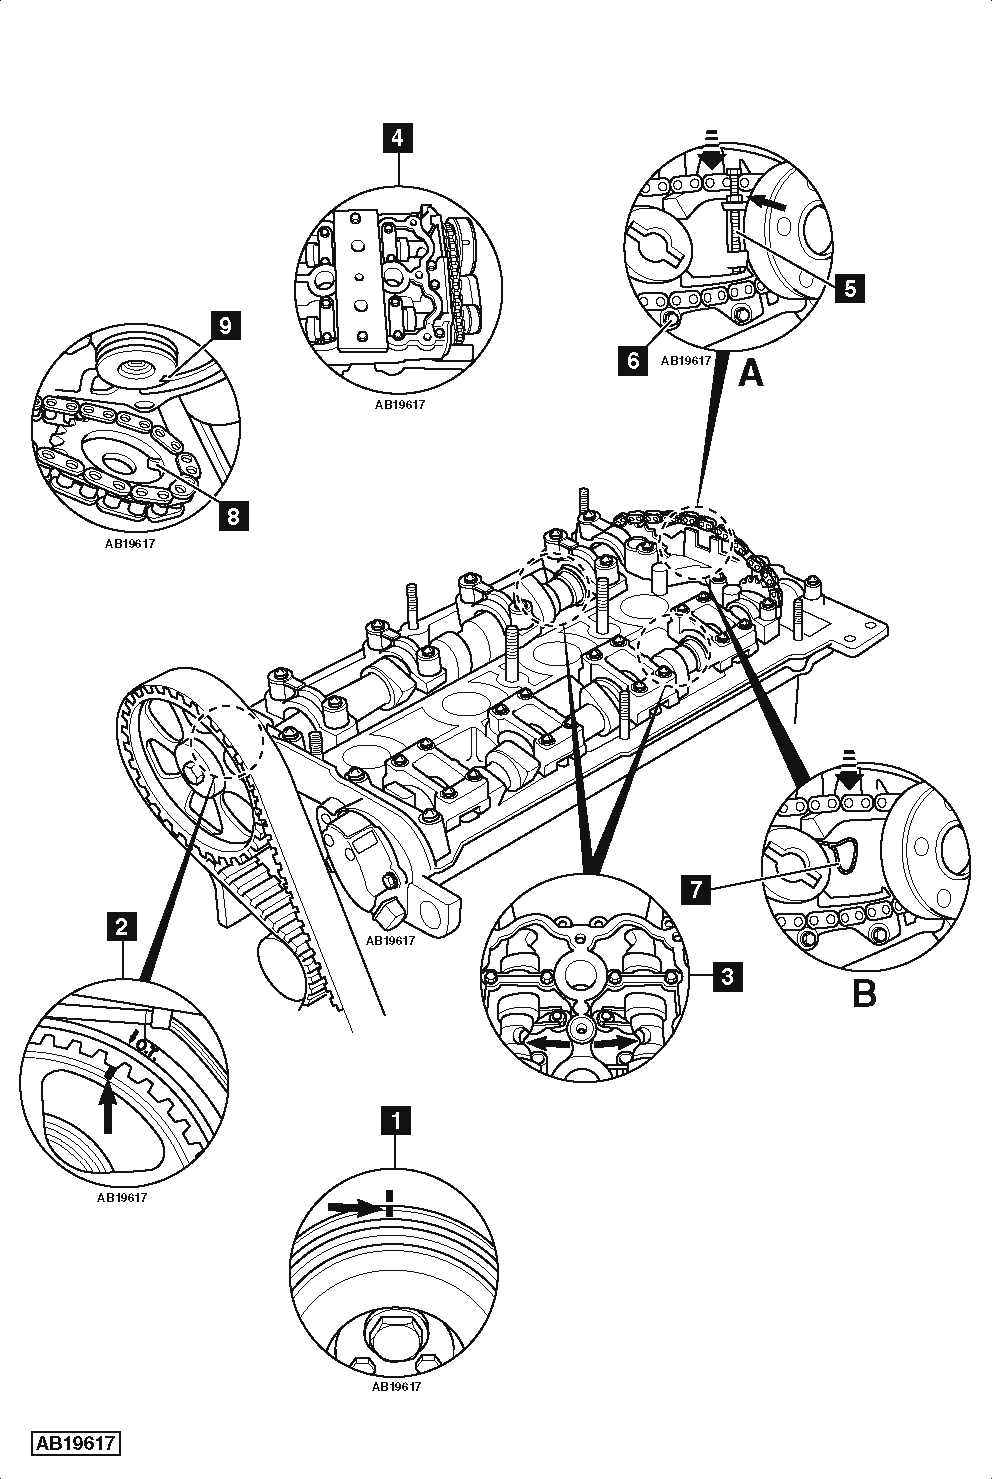 Audi 2 0 Fsi Engine Diagram On Audi Images. All About Wiring Diagrams